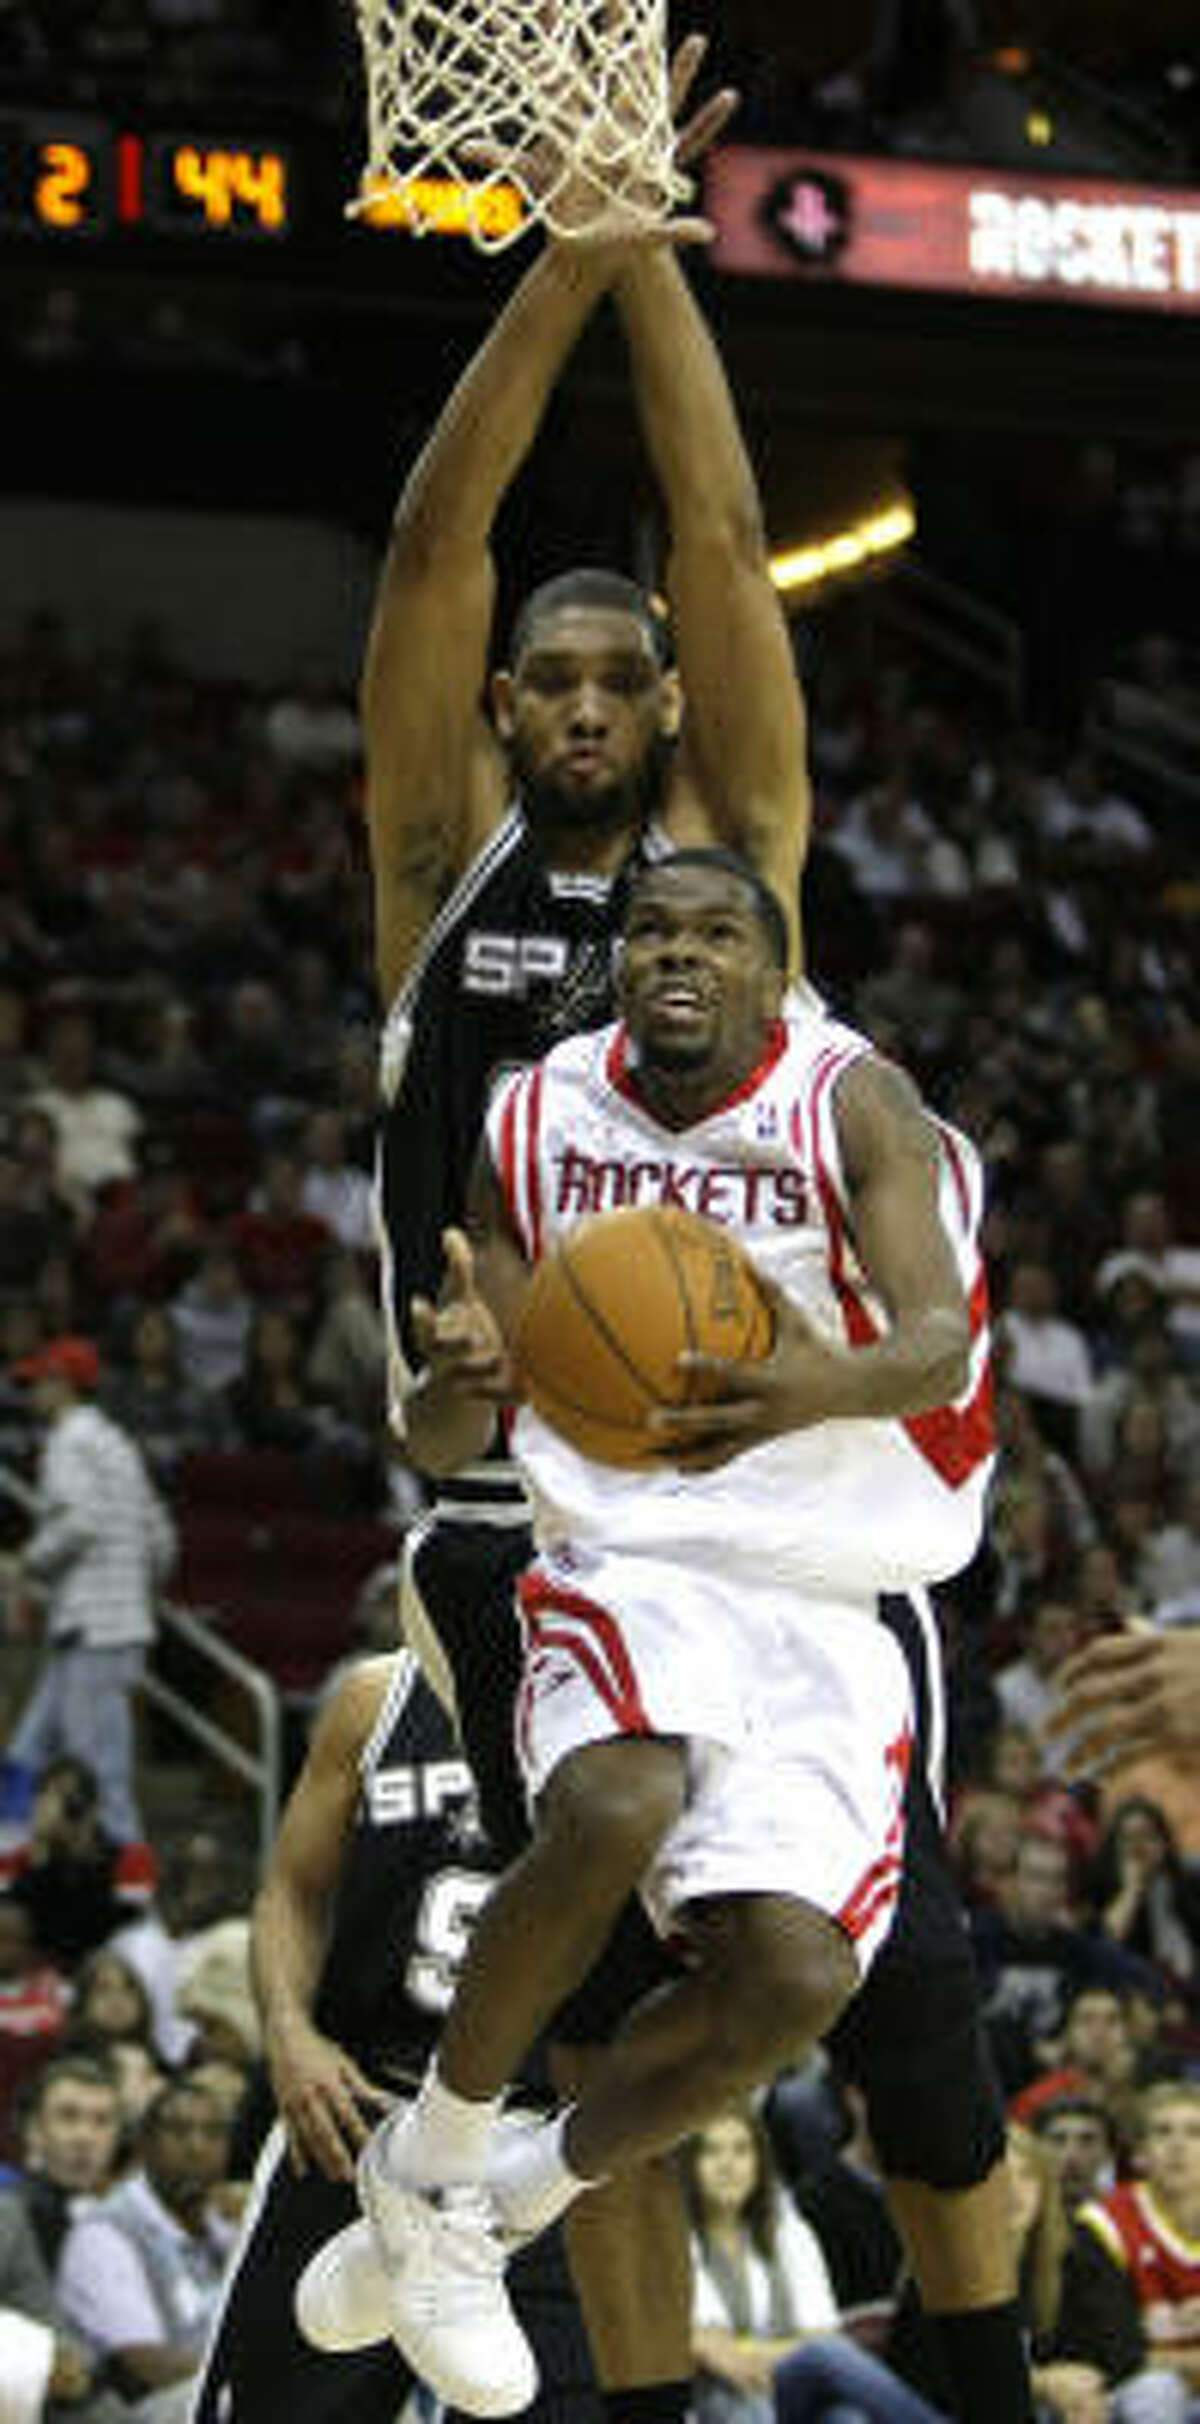 Rockets guard Aaron Brooks has become adept at taking on bigger players at the basket.